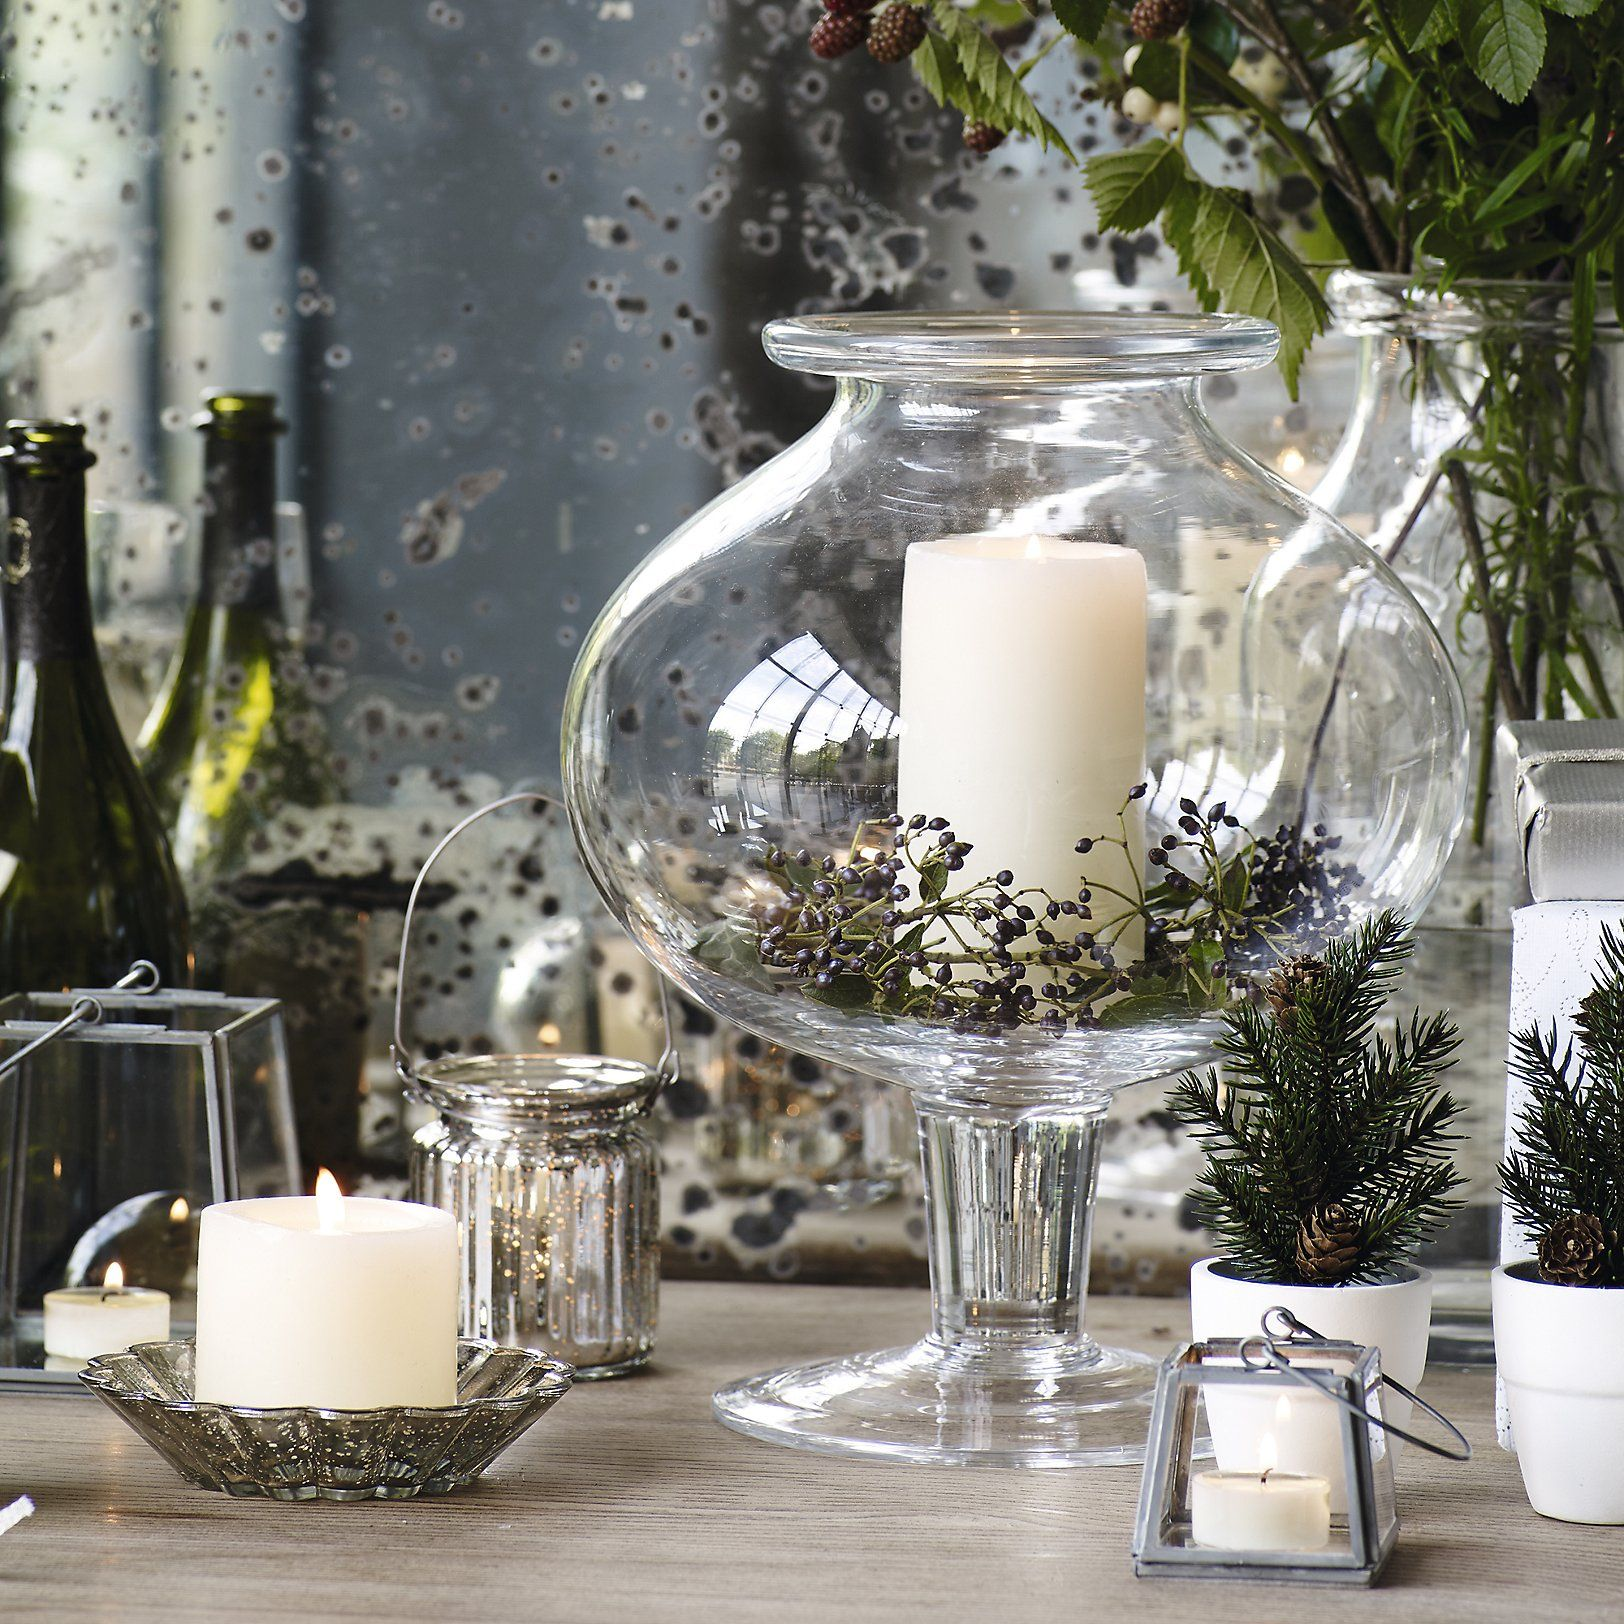 Glass Footed Vase Home Accessories Sale The White Company Luxury Christmas Tree The White Company Decor